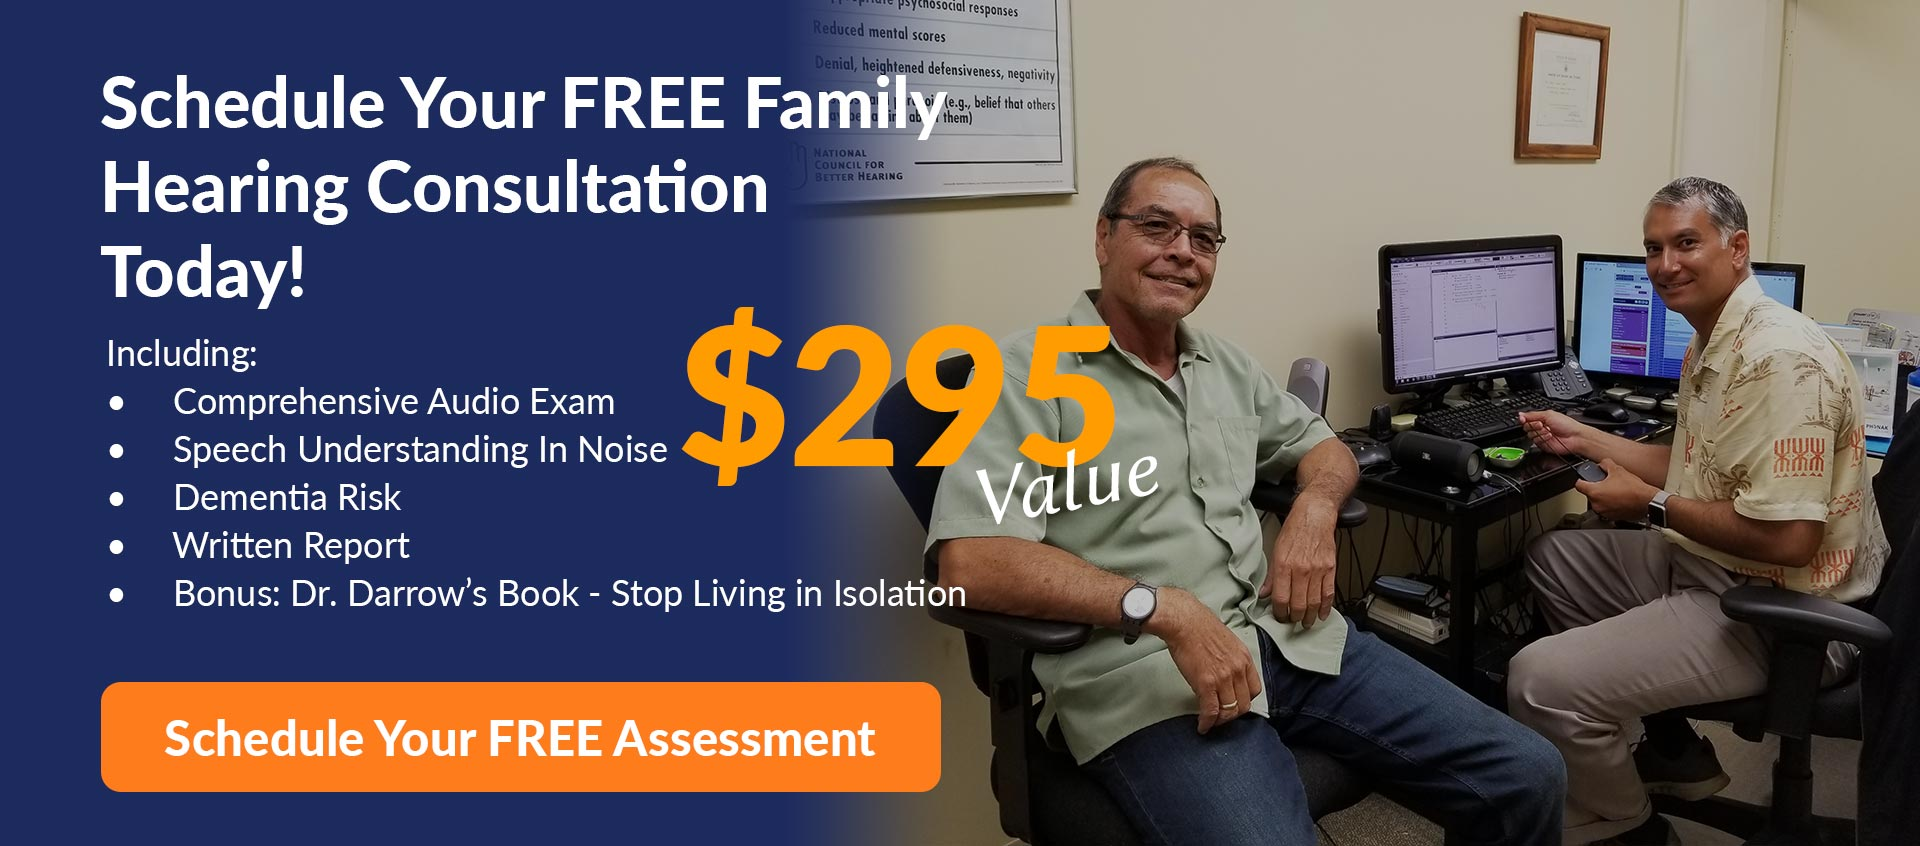 free family hearing consultation